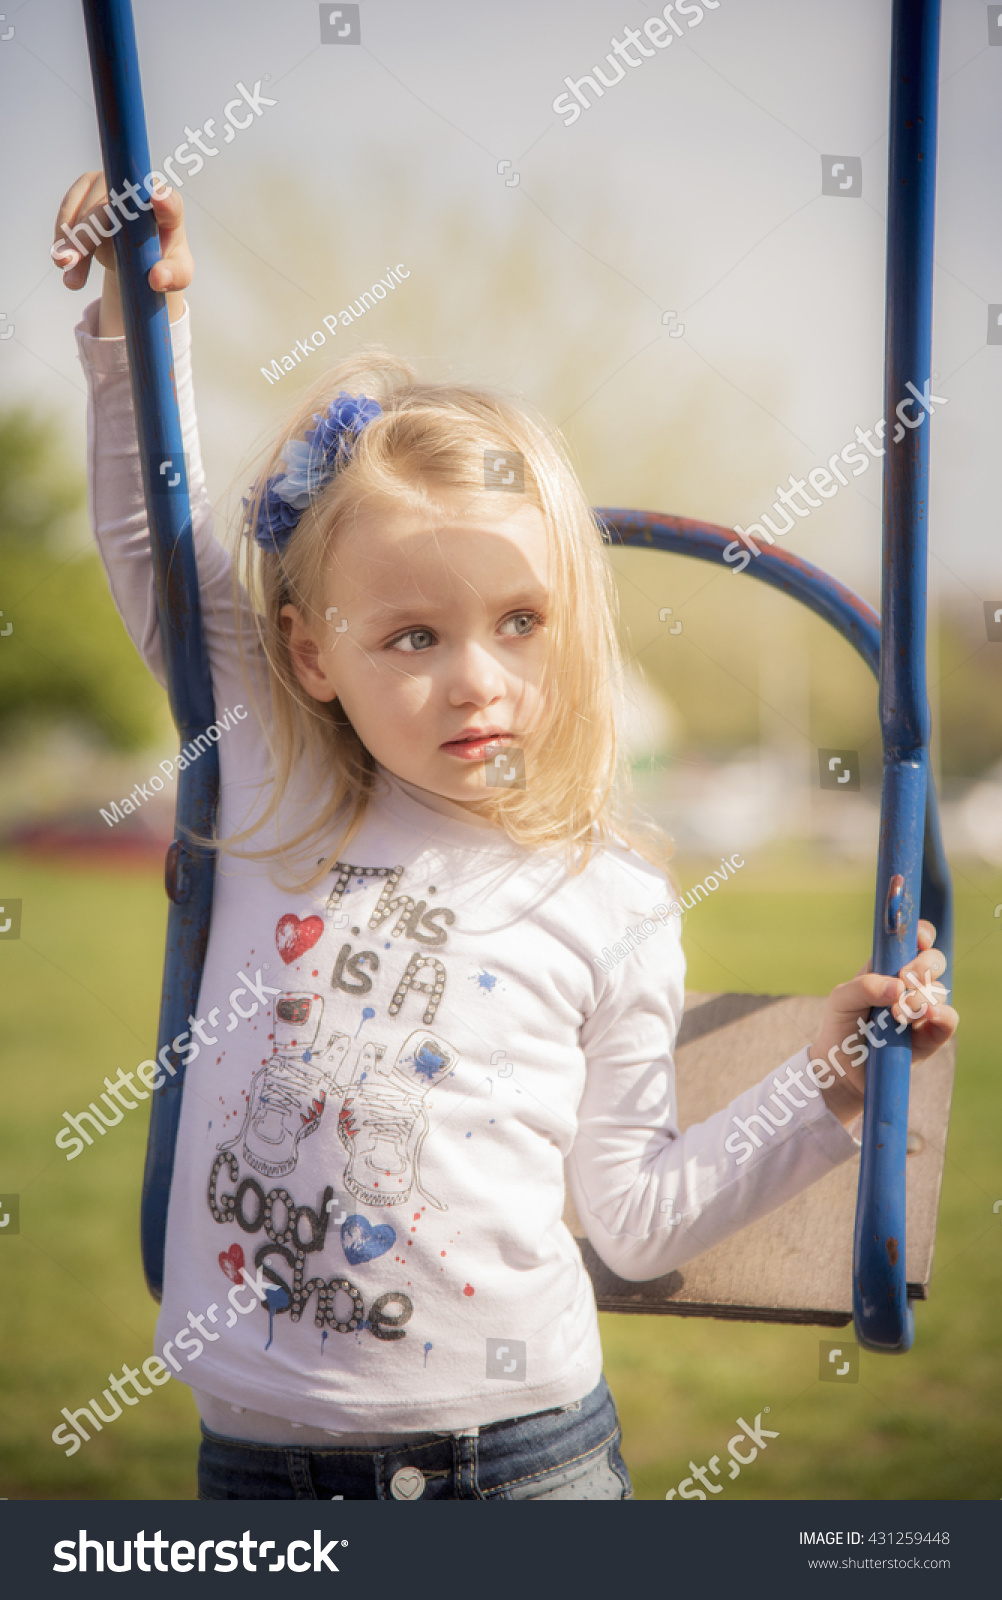 Cute Stock Photography: Cute Little 4 Years Old Blonde Stock Photo 431259448